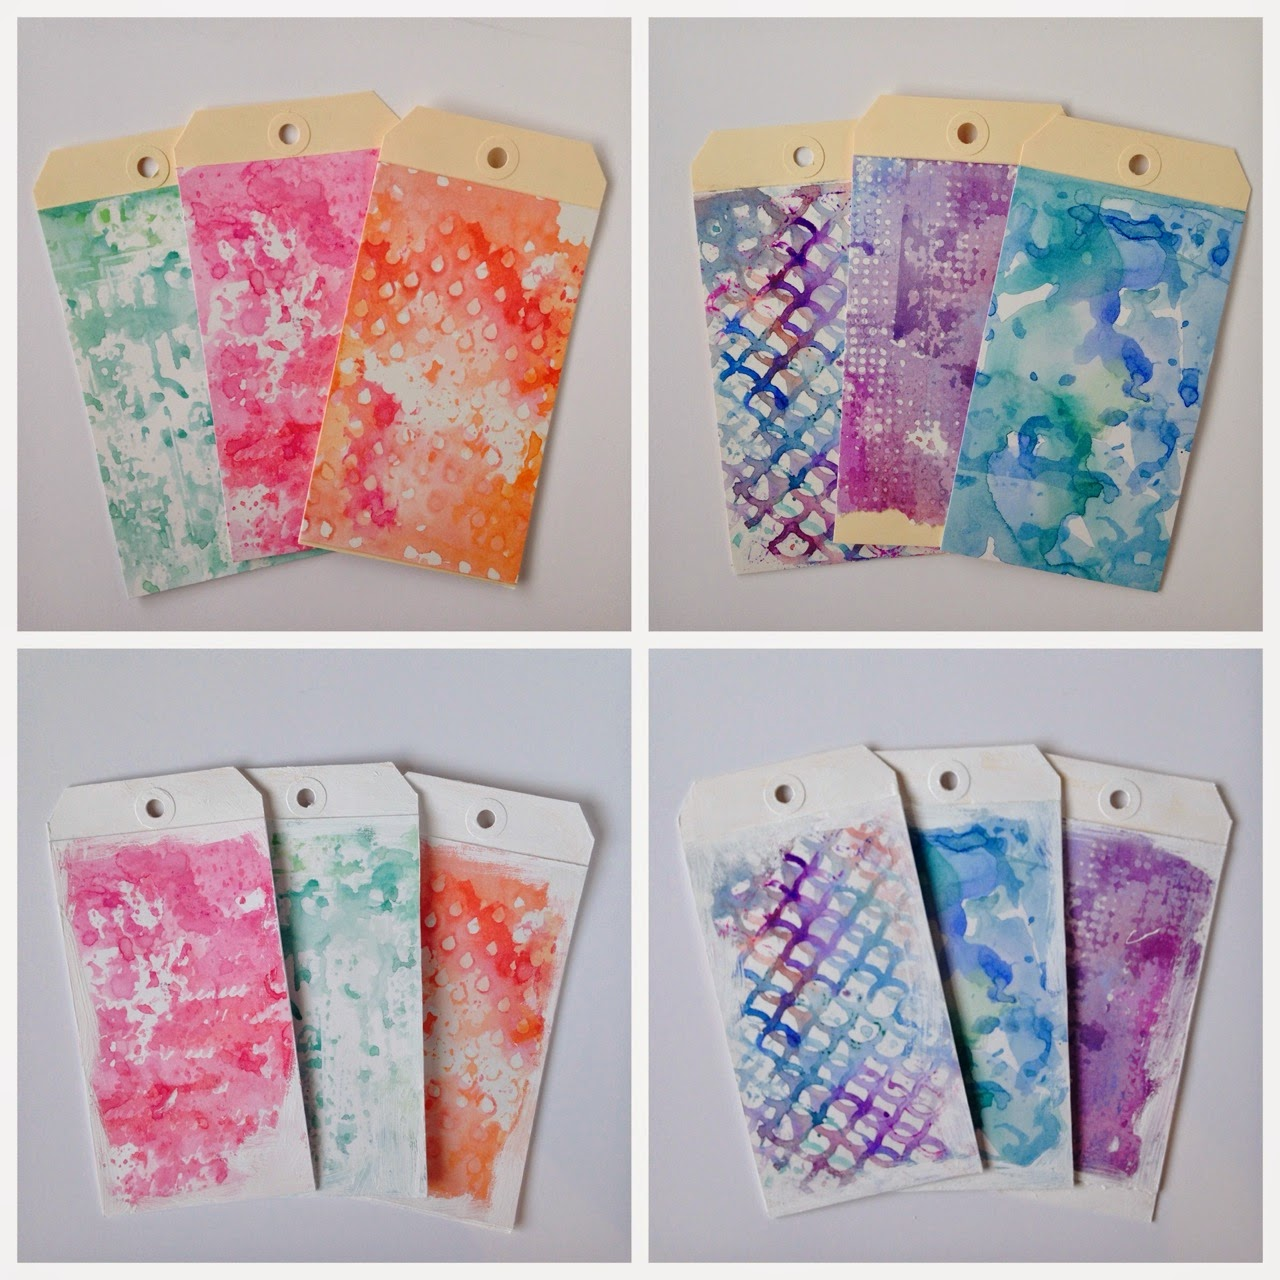 Tim's 12 Tags of 2014 Watercolor Tag Tutorial